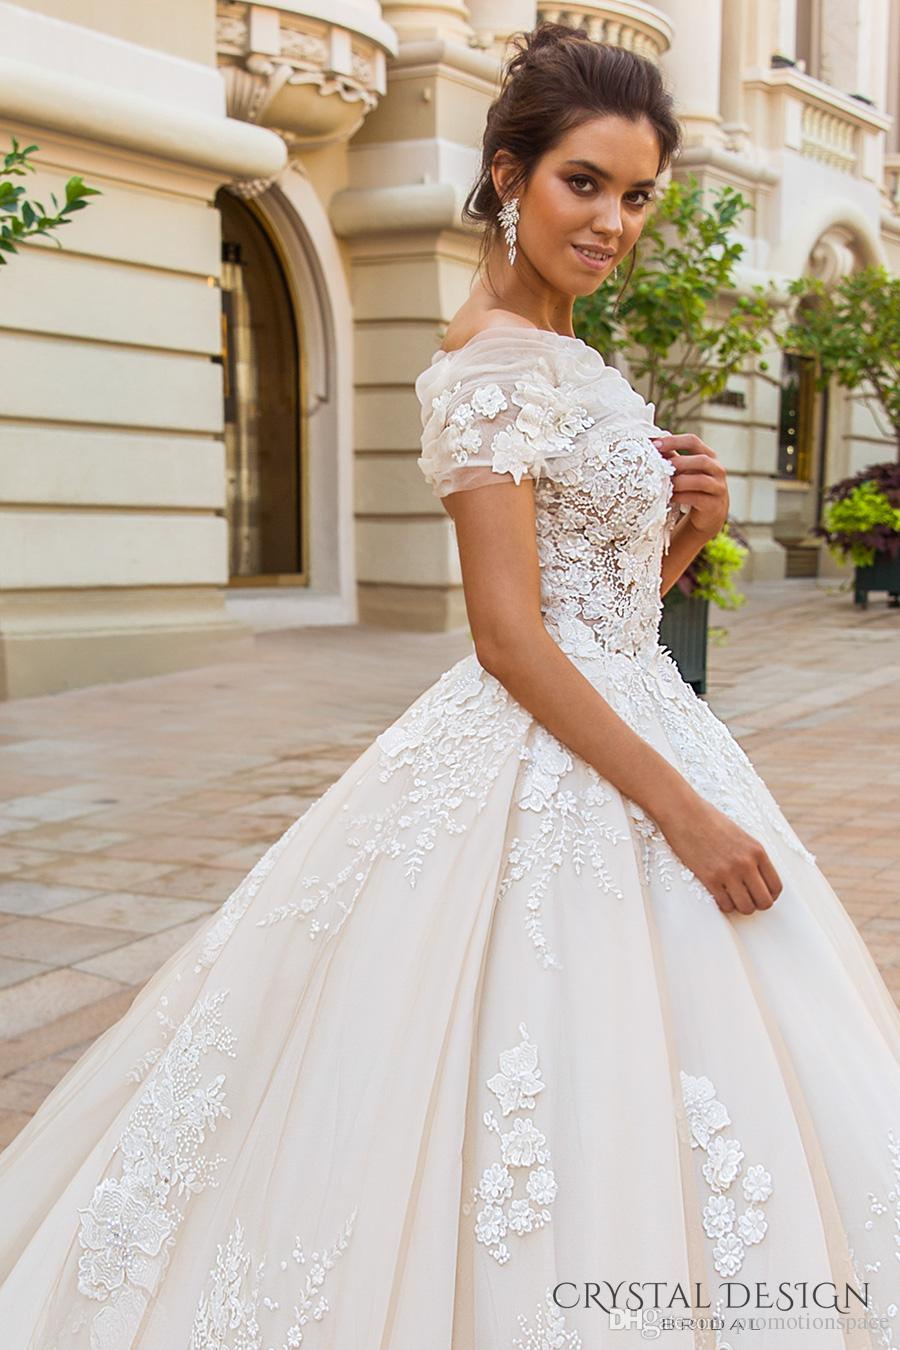 2018 Stunning Light Chamapgne Wedding Dresses with Detachable Bolero Sweetheart Full Embroidery Cathedral Train Bridal Gowns Custom Made